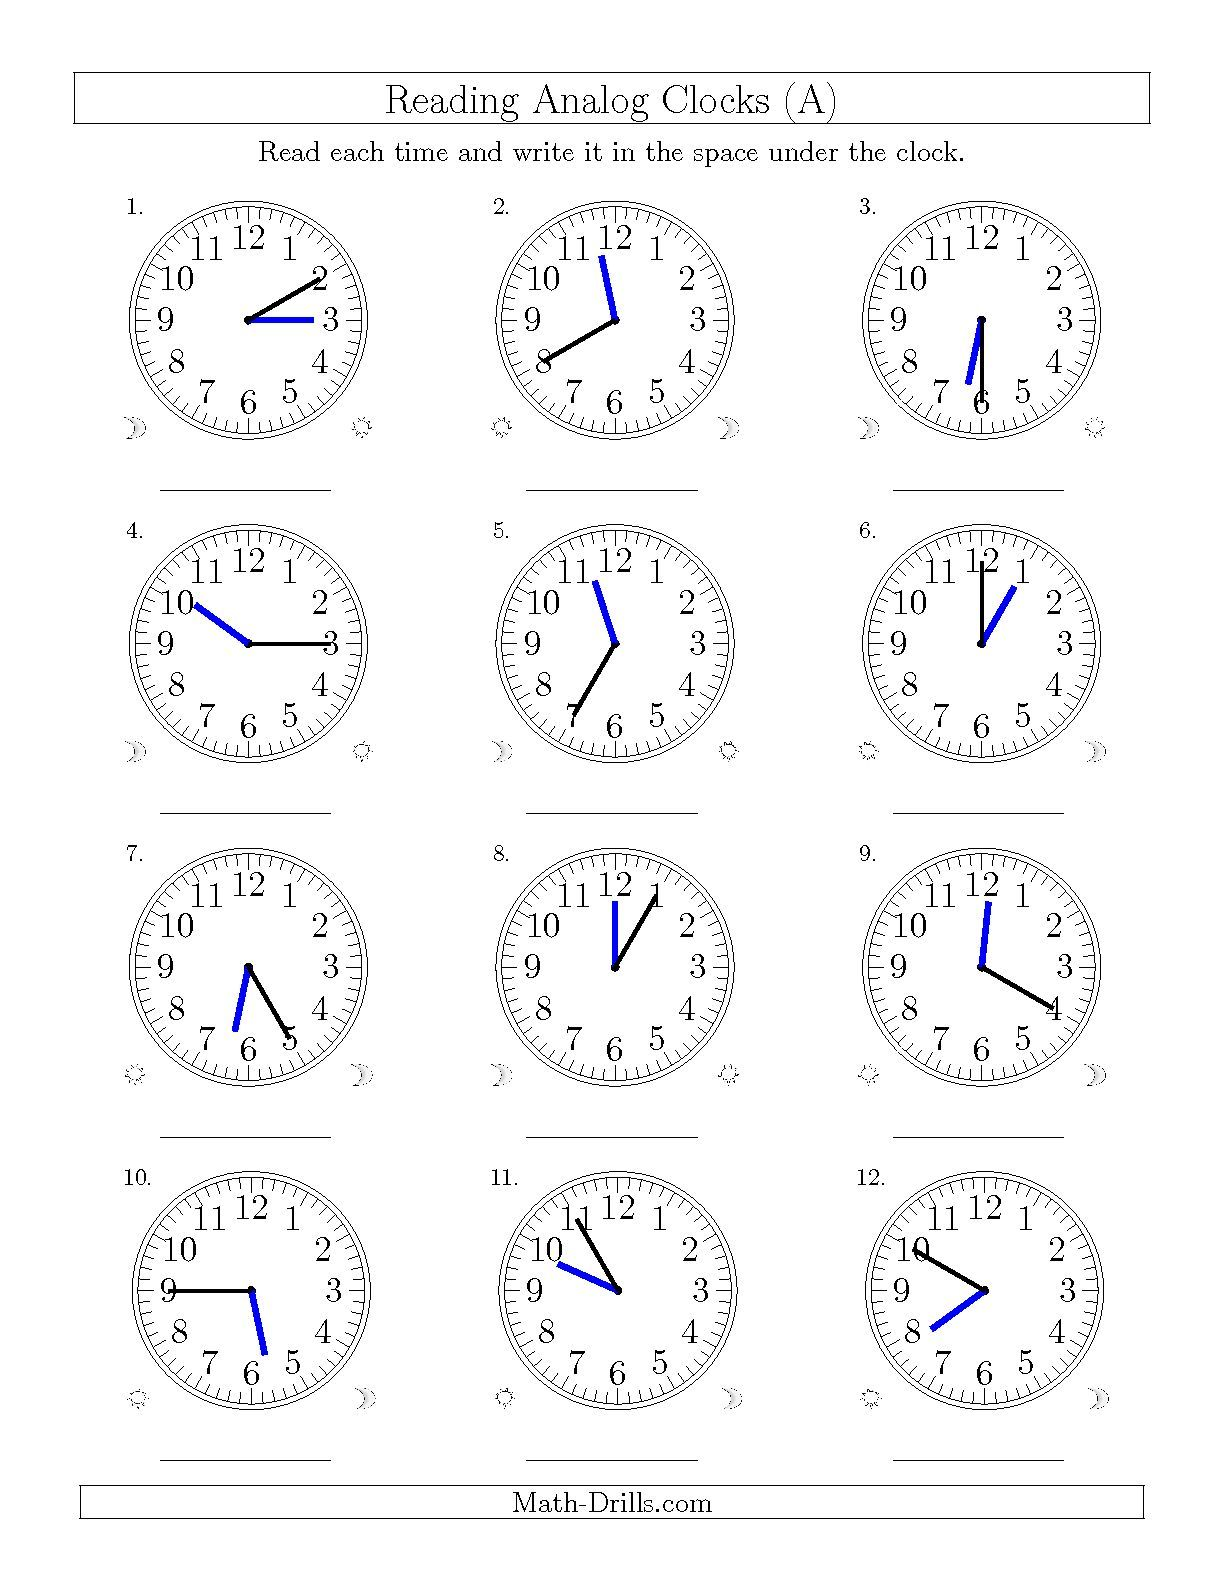 small resolution of The Reading Time on 12 Hour Analog Clocks in 5 Minute Intervals (A) math  worksheet from the Time Wor…   Time worksheets